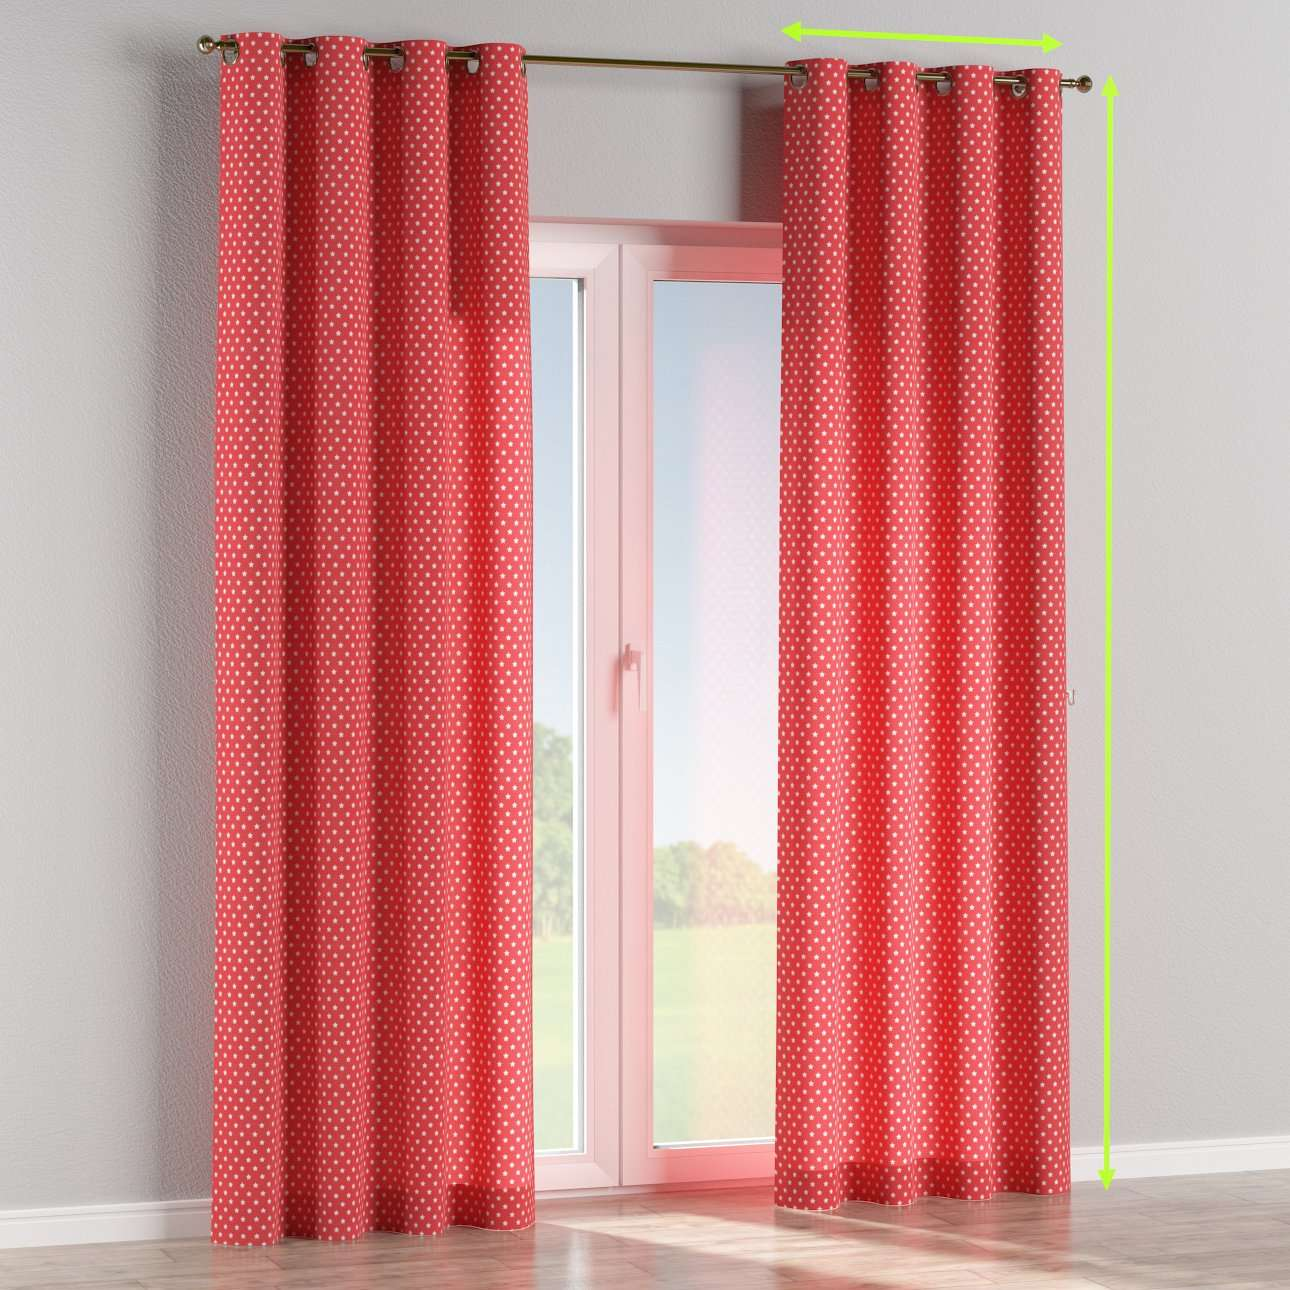 Eyelet curtains in collection Ashley, fabric: 137-69